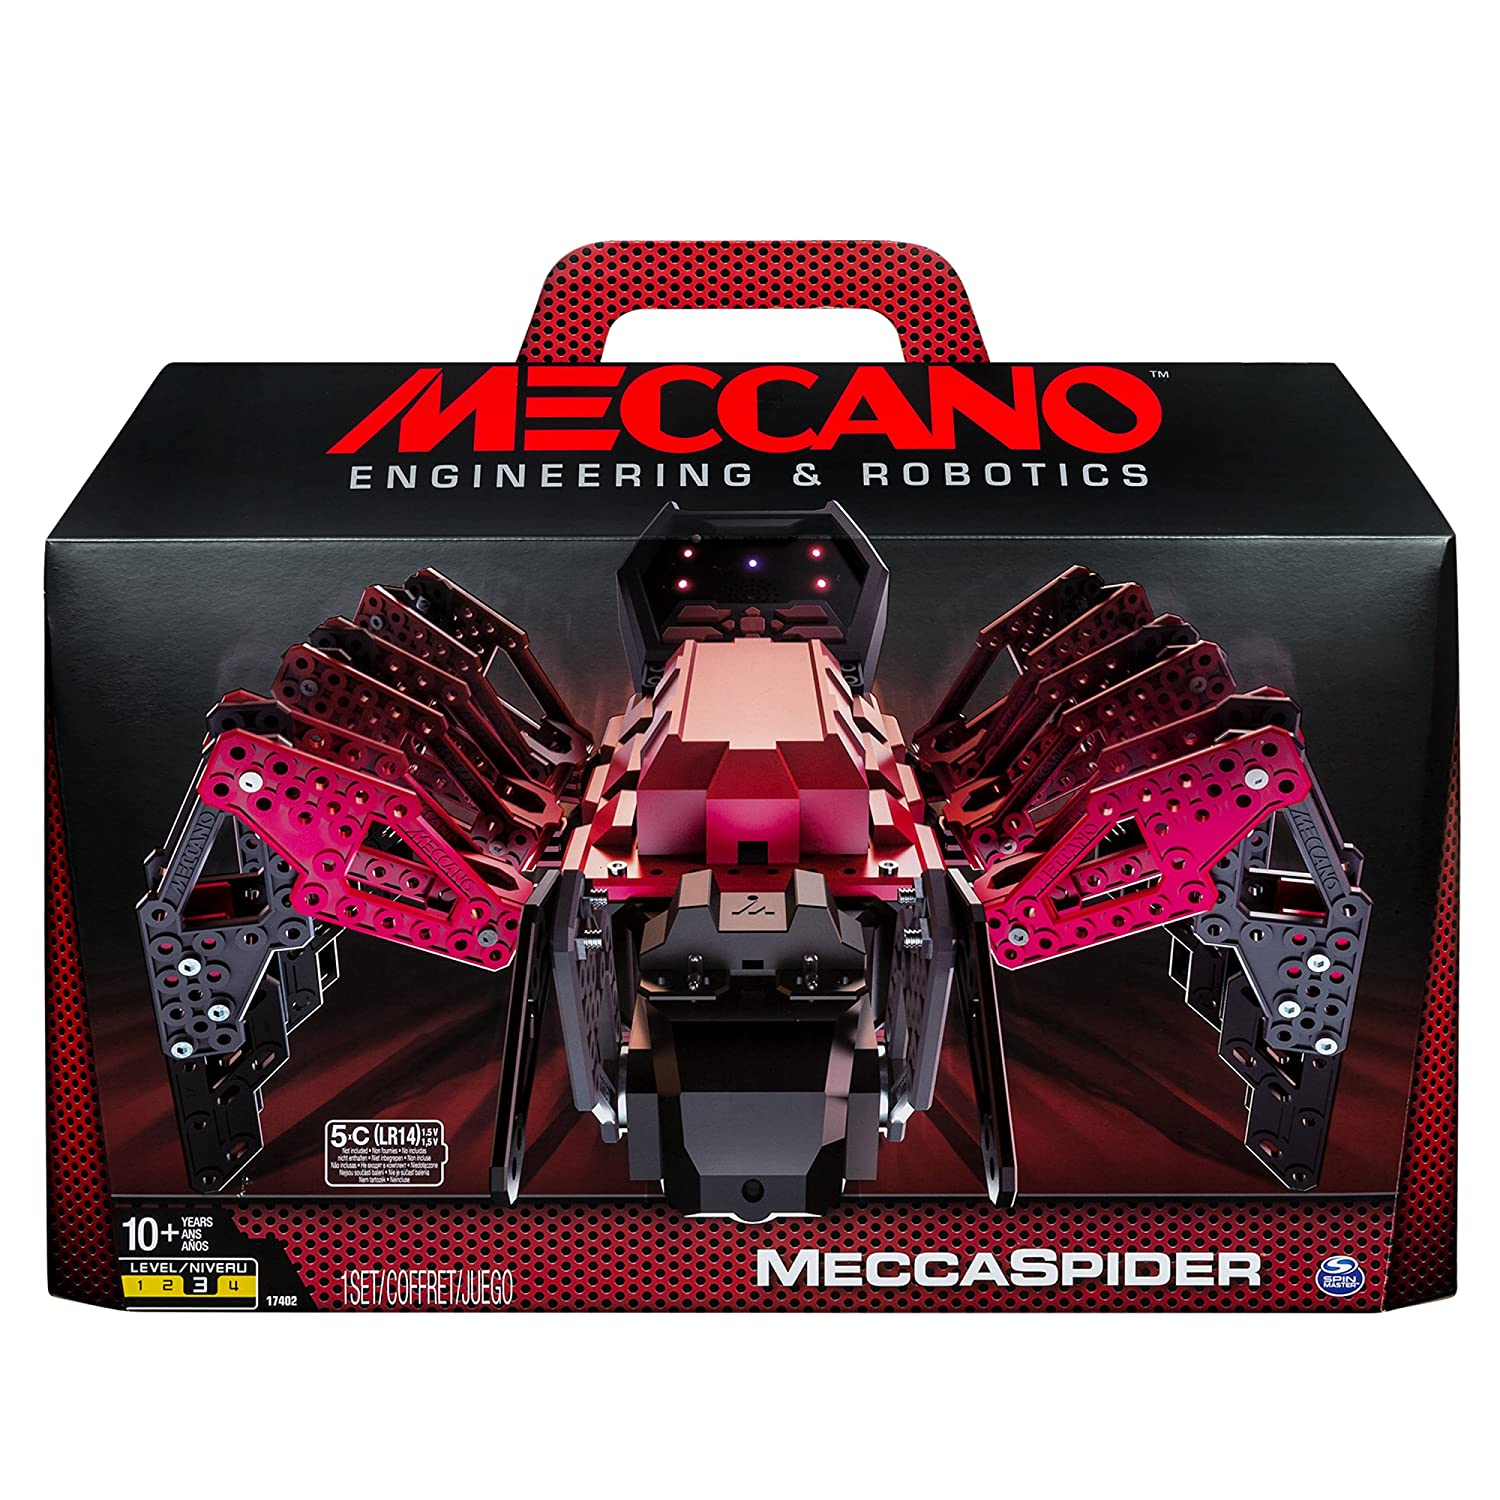 Top 7 Best Remote Control Spider Toys Reviews in 2020 7